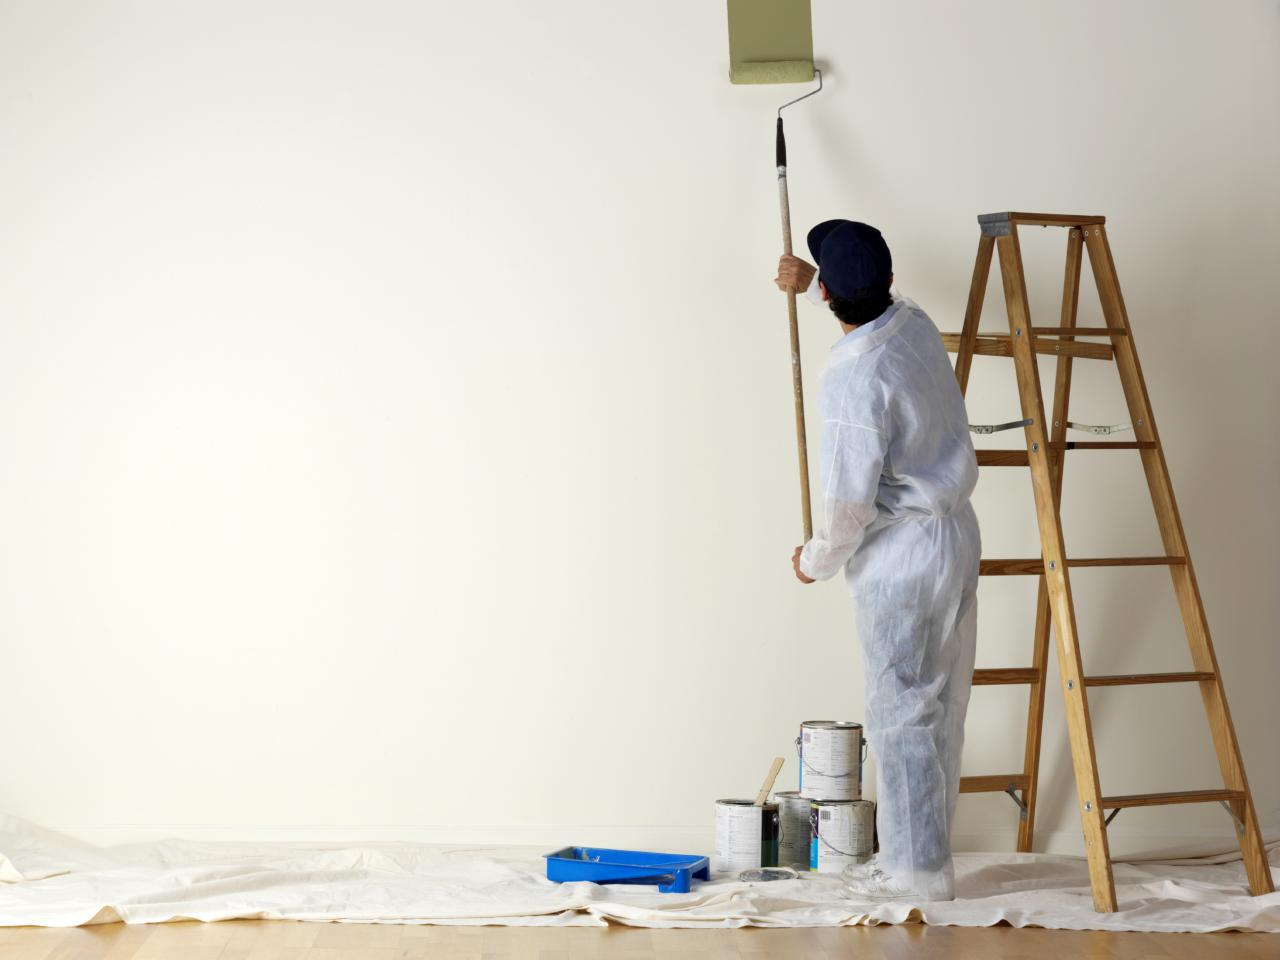 iStock-000005373958_Man-painting-wall-with-roller.jpg.rend.hgtvcom.1280.960